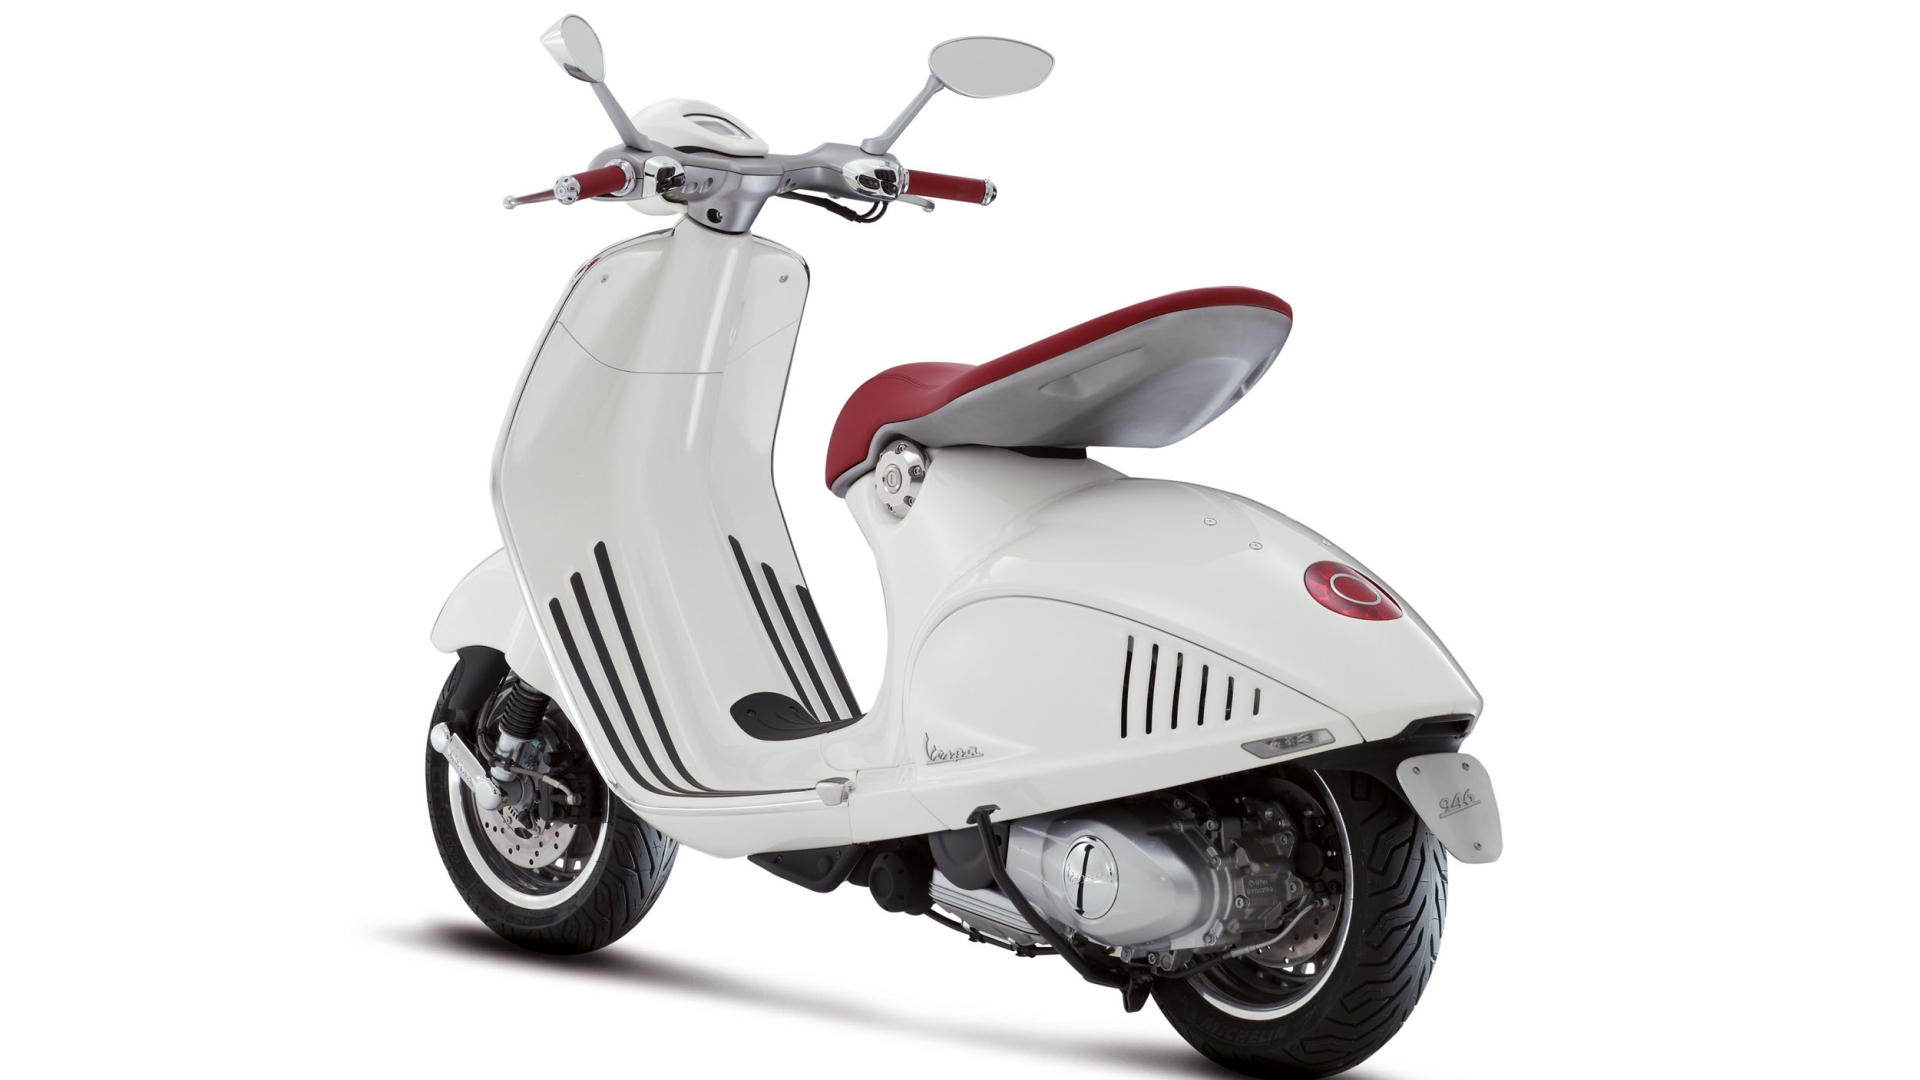 2014 Vespa 946 Comes to North America [Photo Gallery]